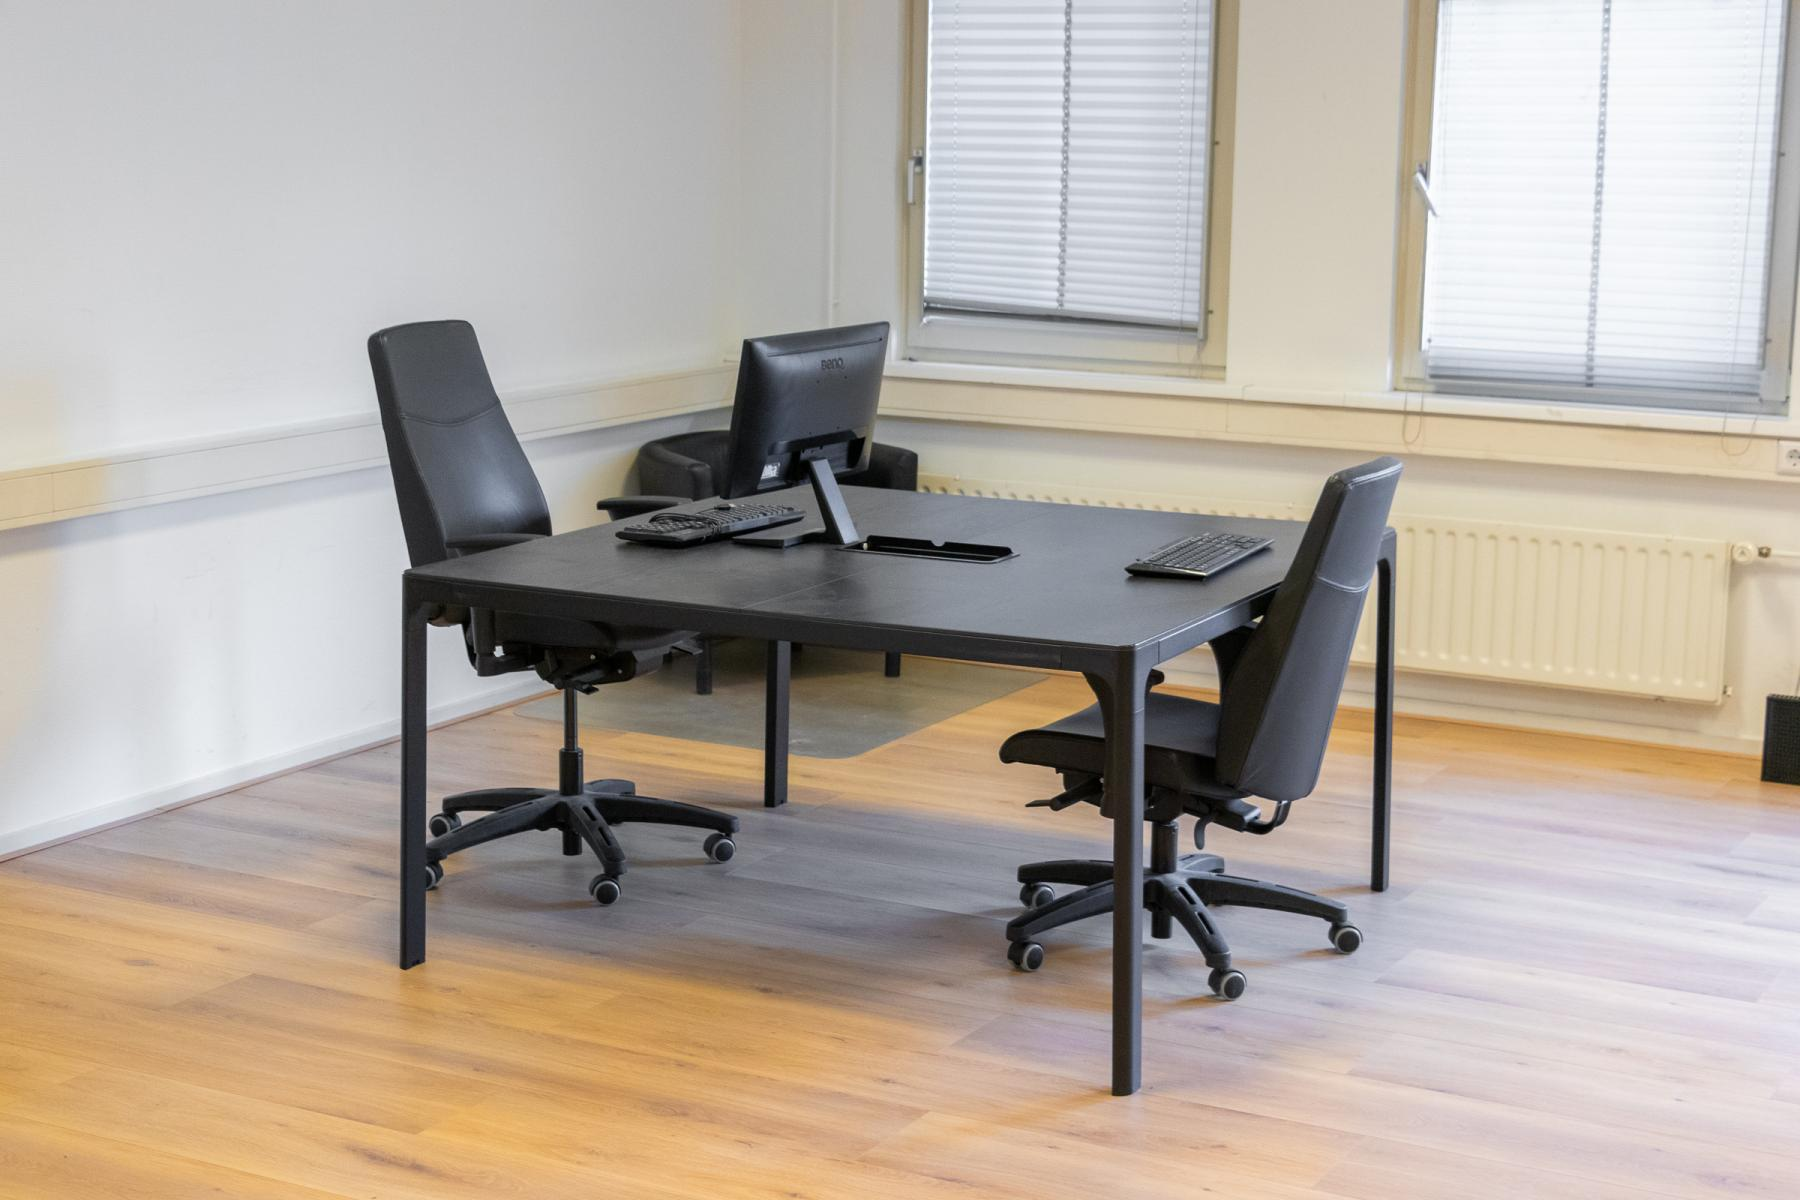 Rent office space Amstel 62, Amsterdam (14)